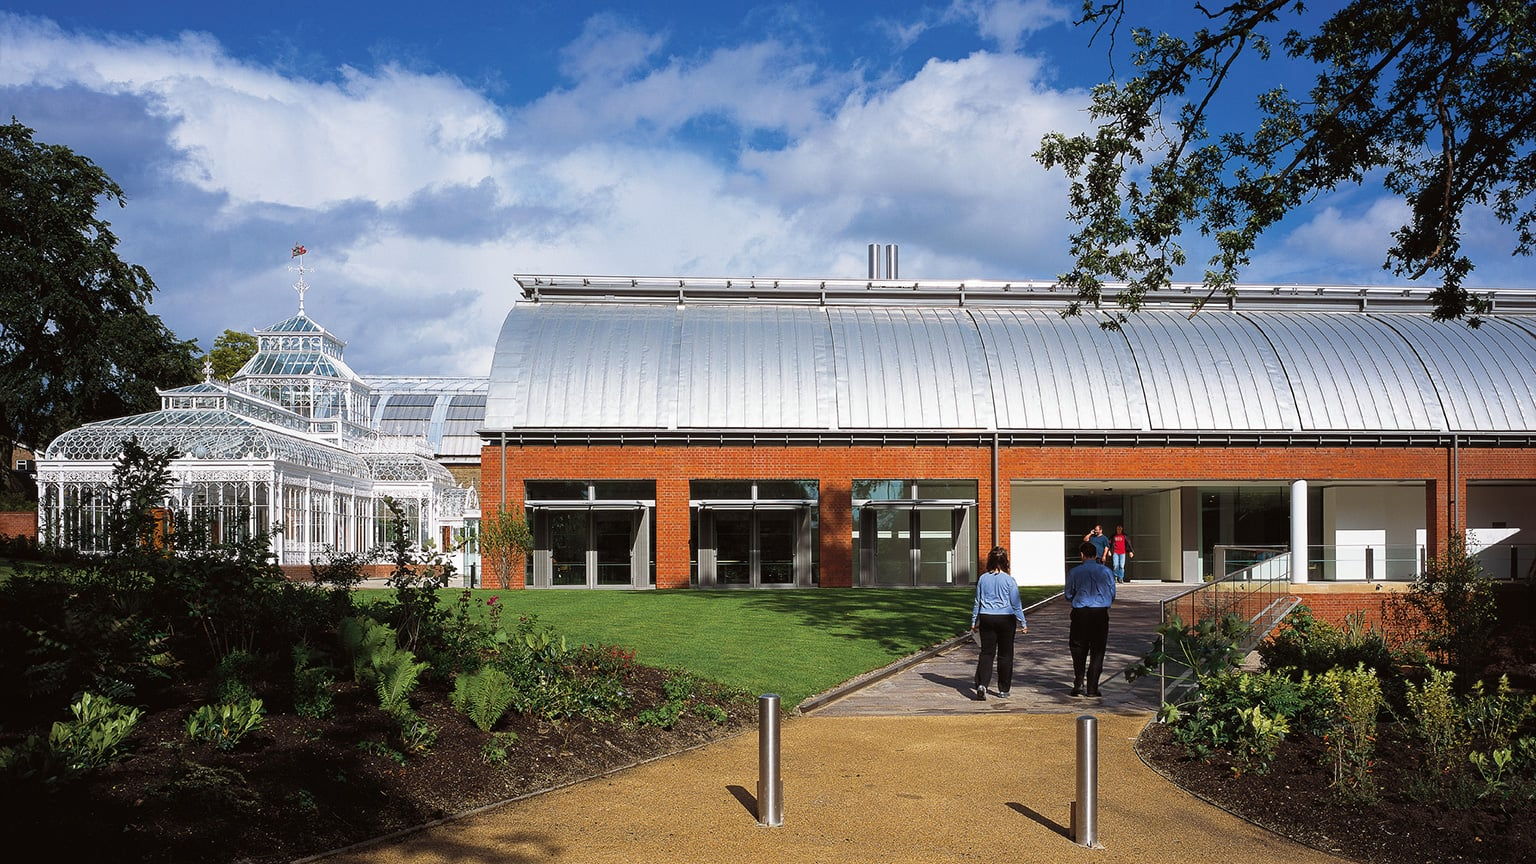 5. Horniman Museum and Gardens, London - Reduced price entry to exhibitions with National Art Pass